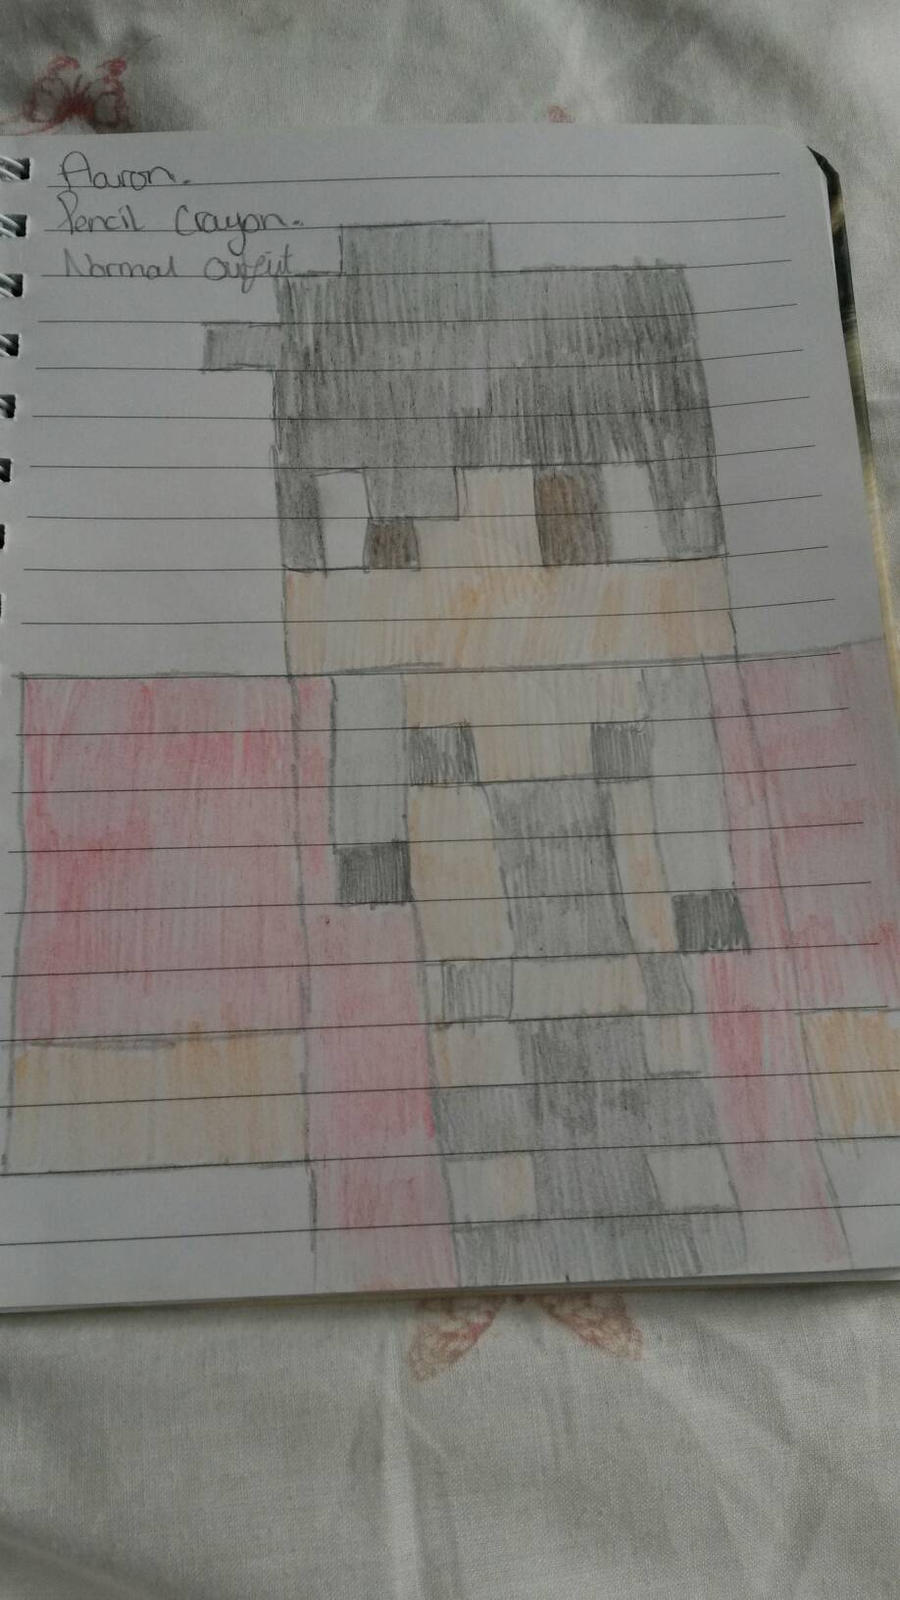 Aaron my street outfit minecraft skin #aphmau by Icefang63